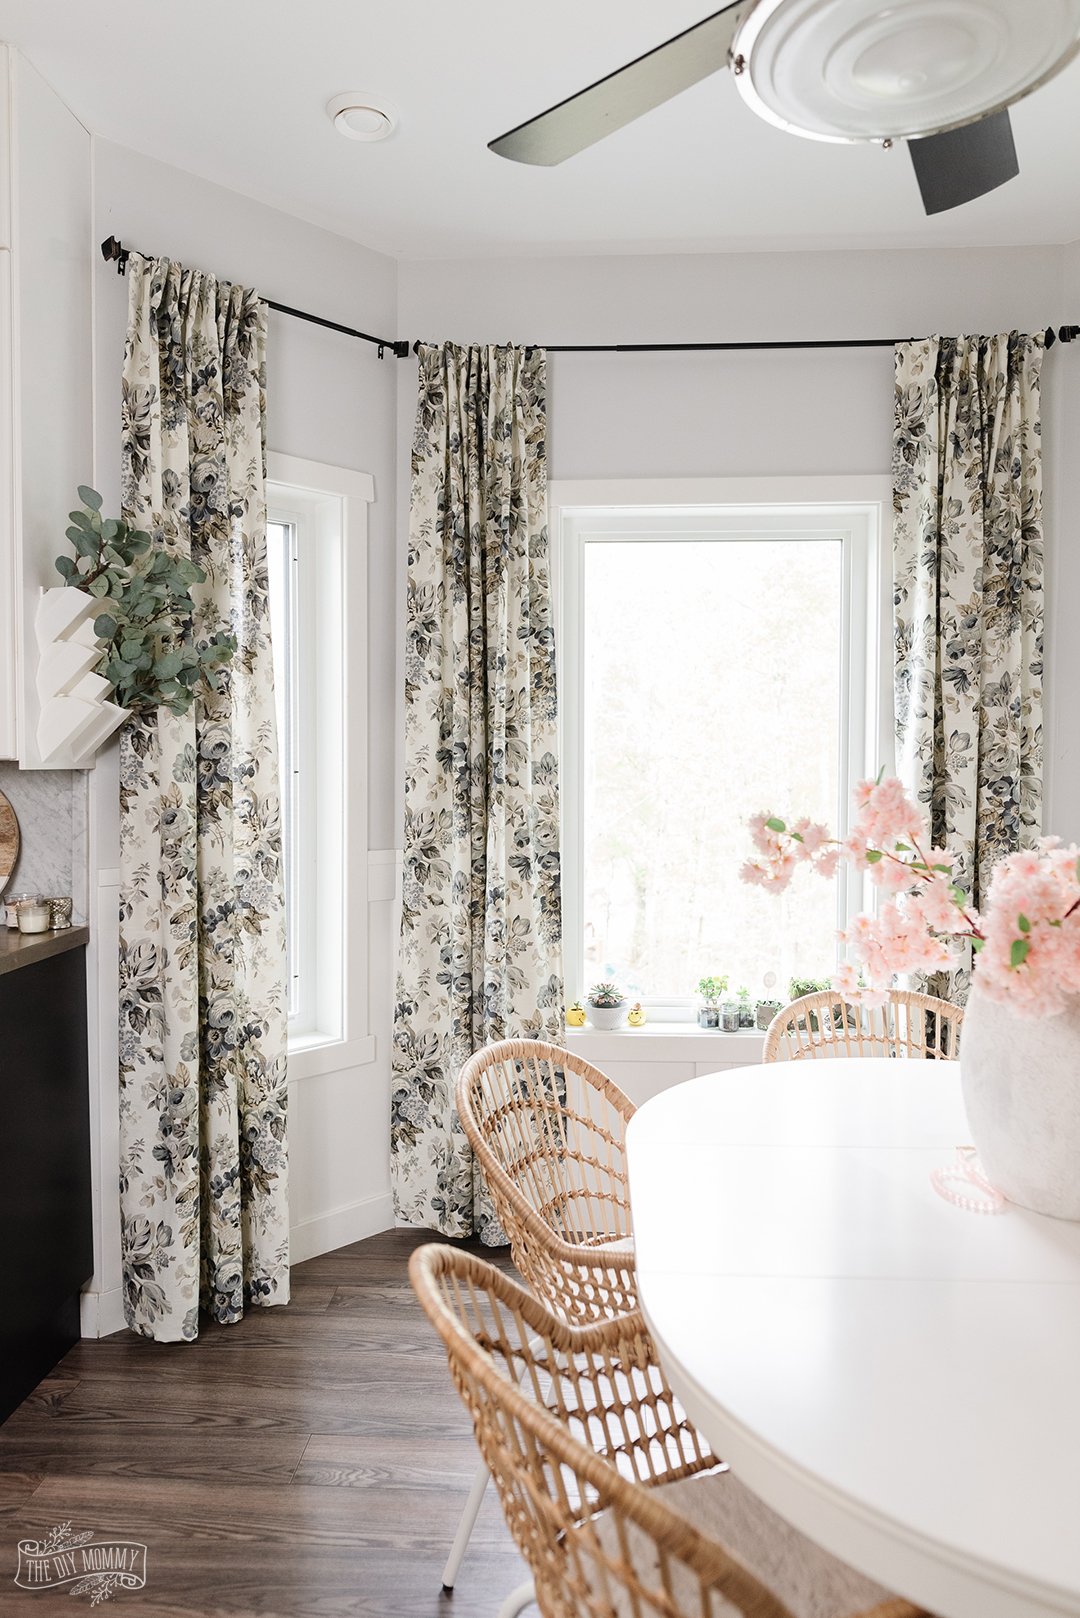 Learn how to sew drapes with pleater tape with this simple DIY curtain tutorial